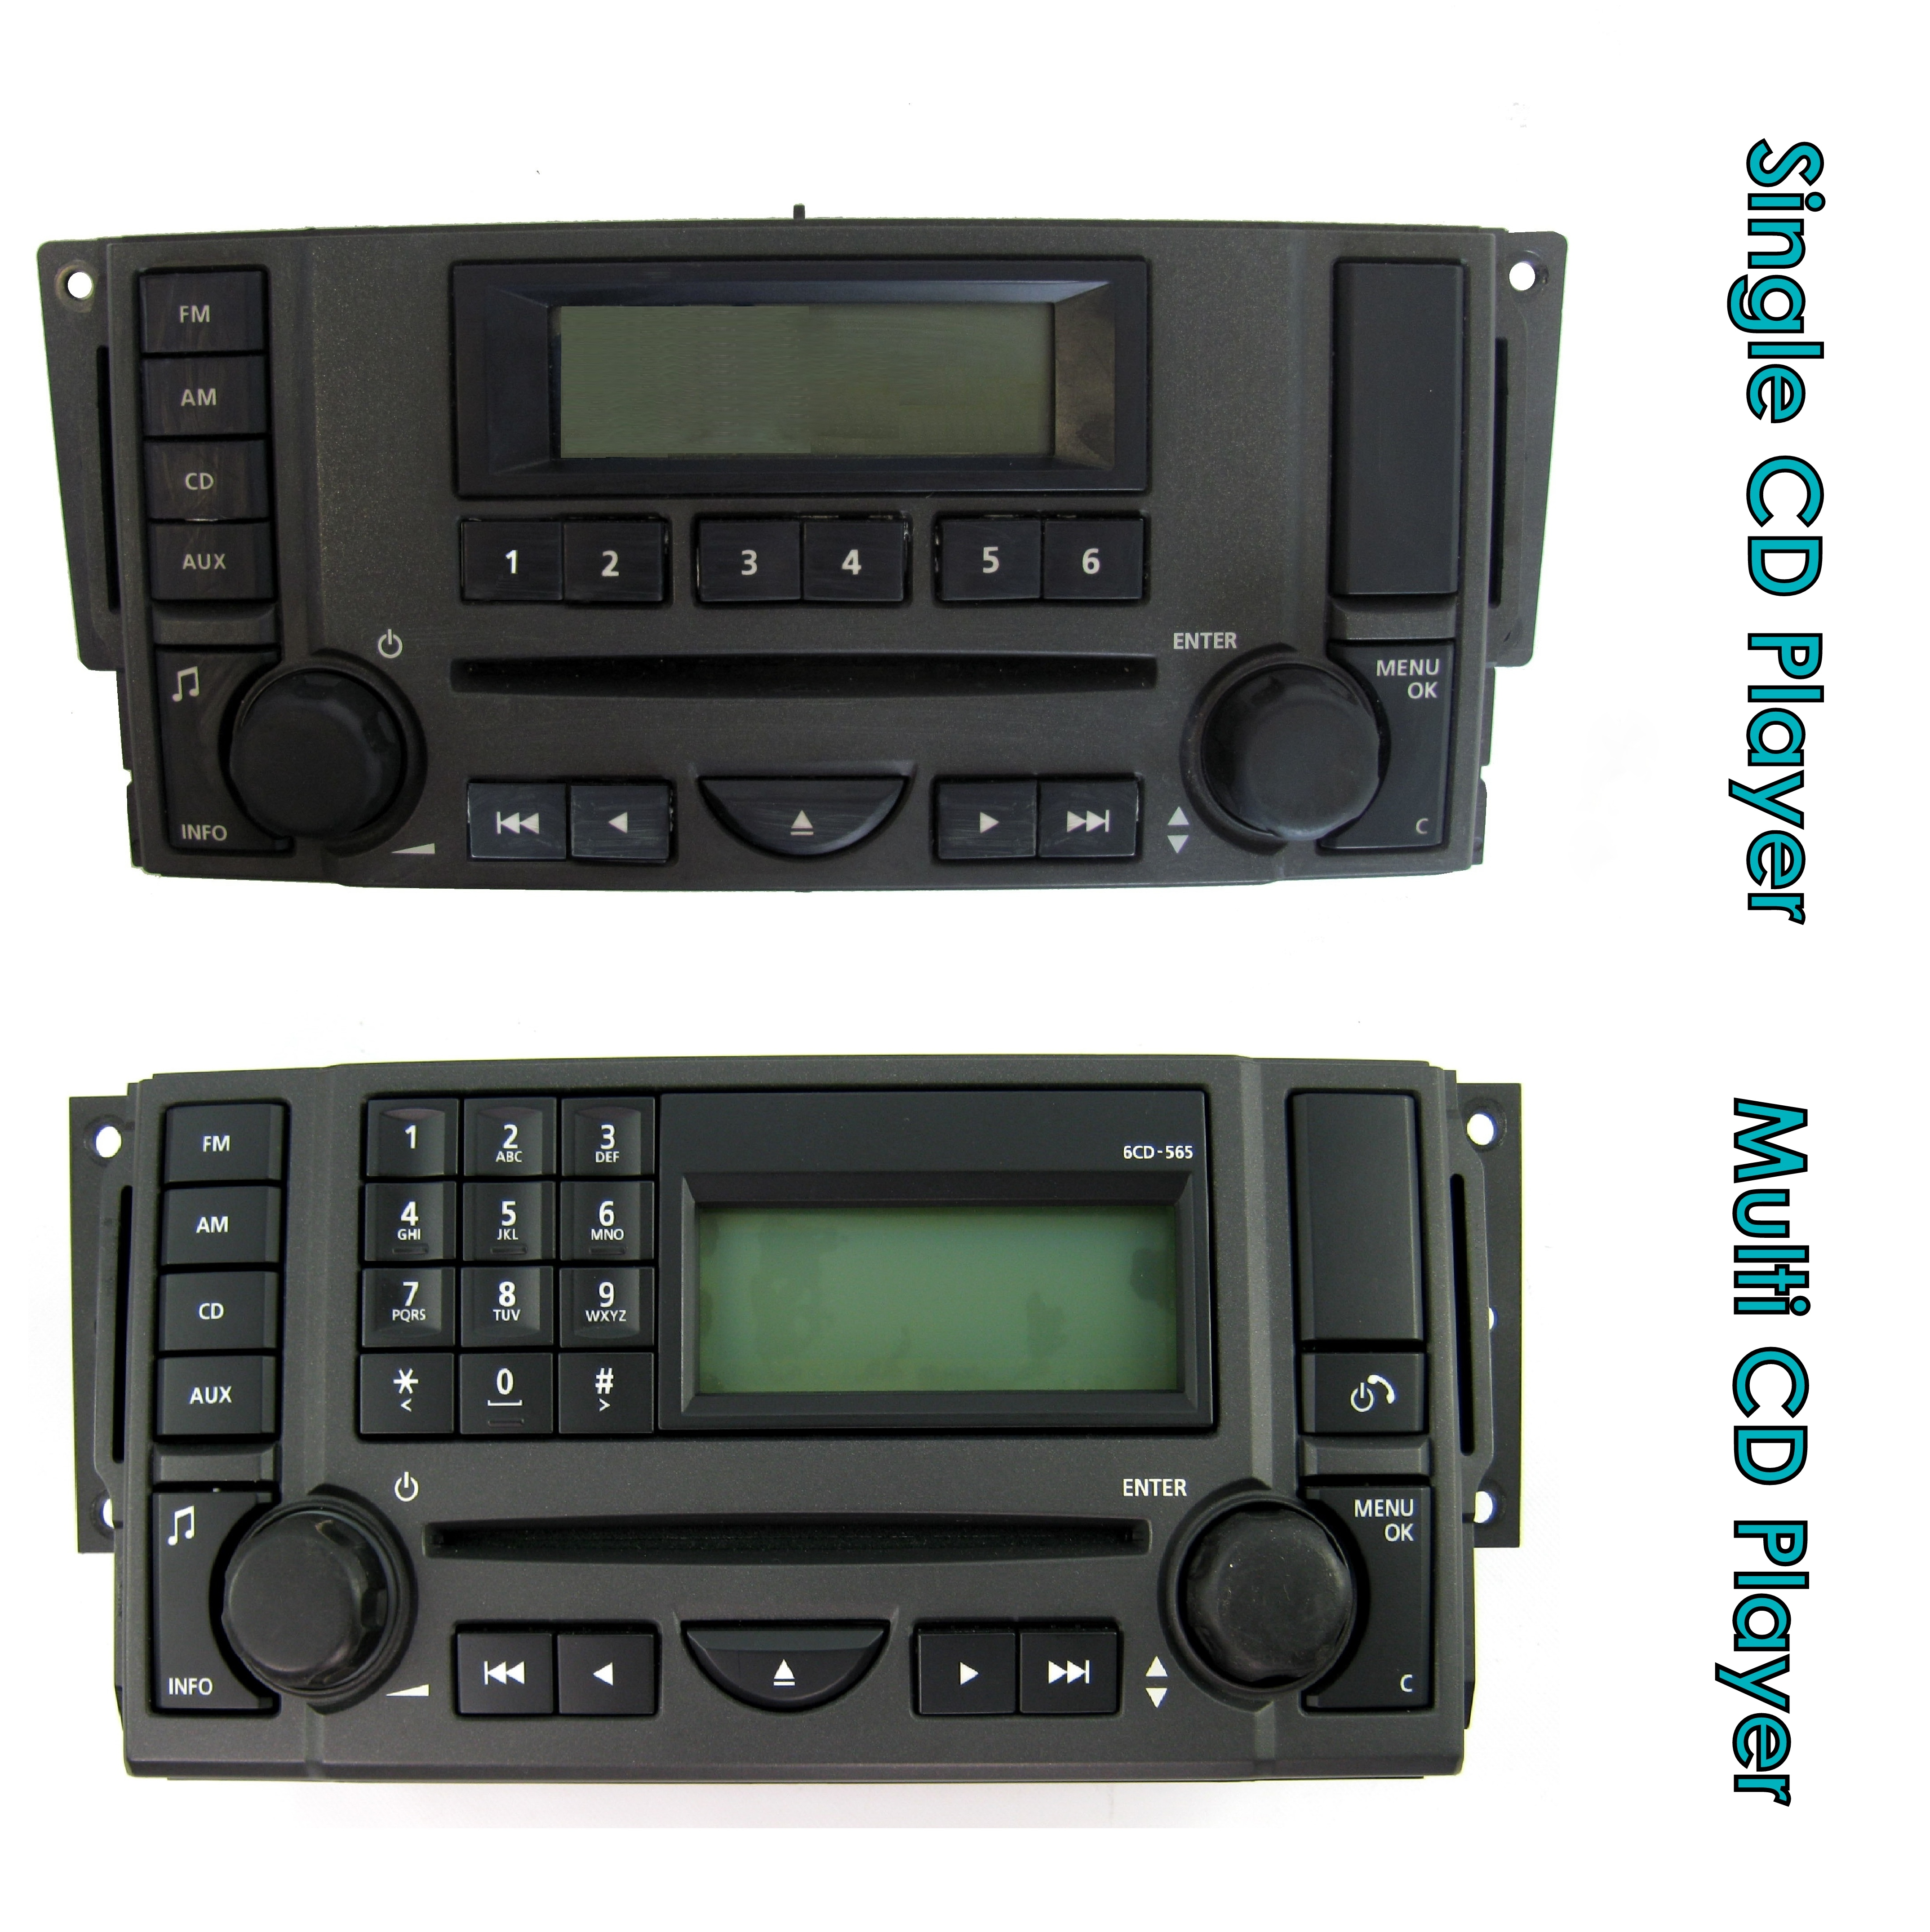 land rover discovery cd player wiring diagram radio button wheel for land rover discovery 3 lr3 cd ...